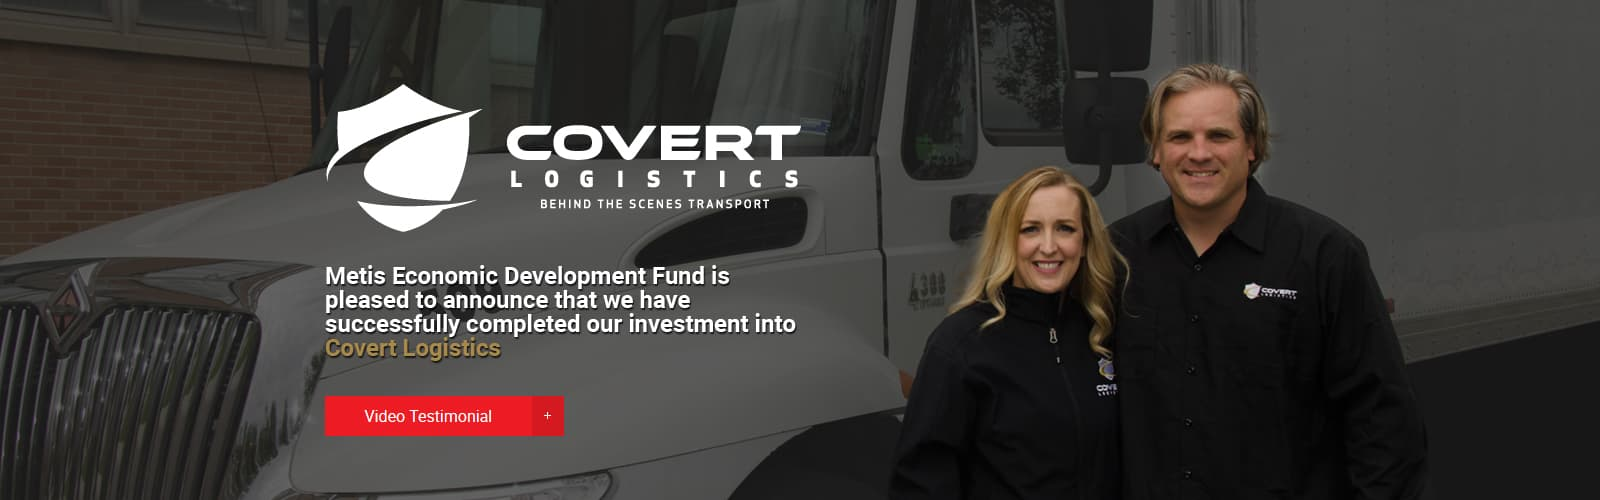 Covert Logistics Investment